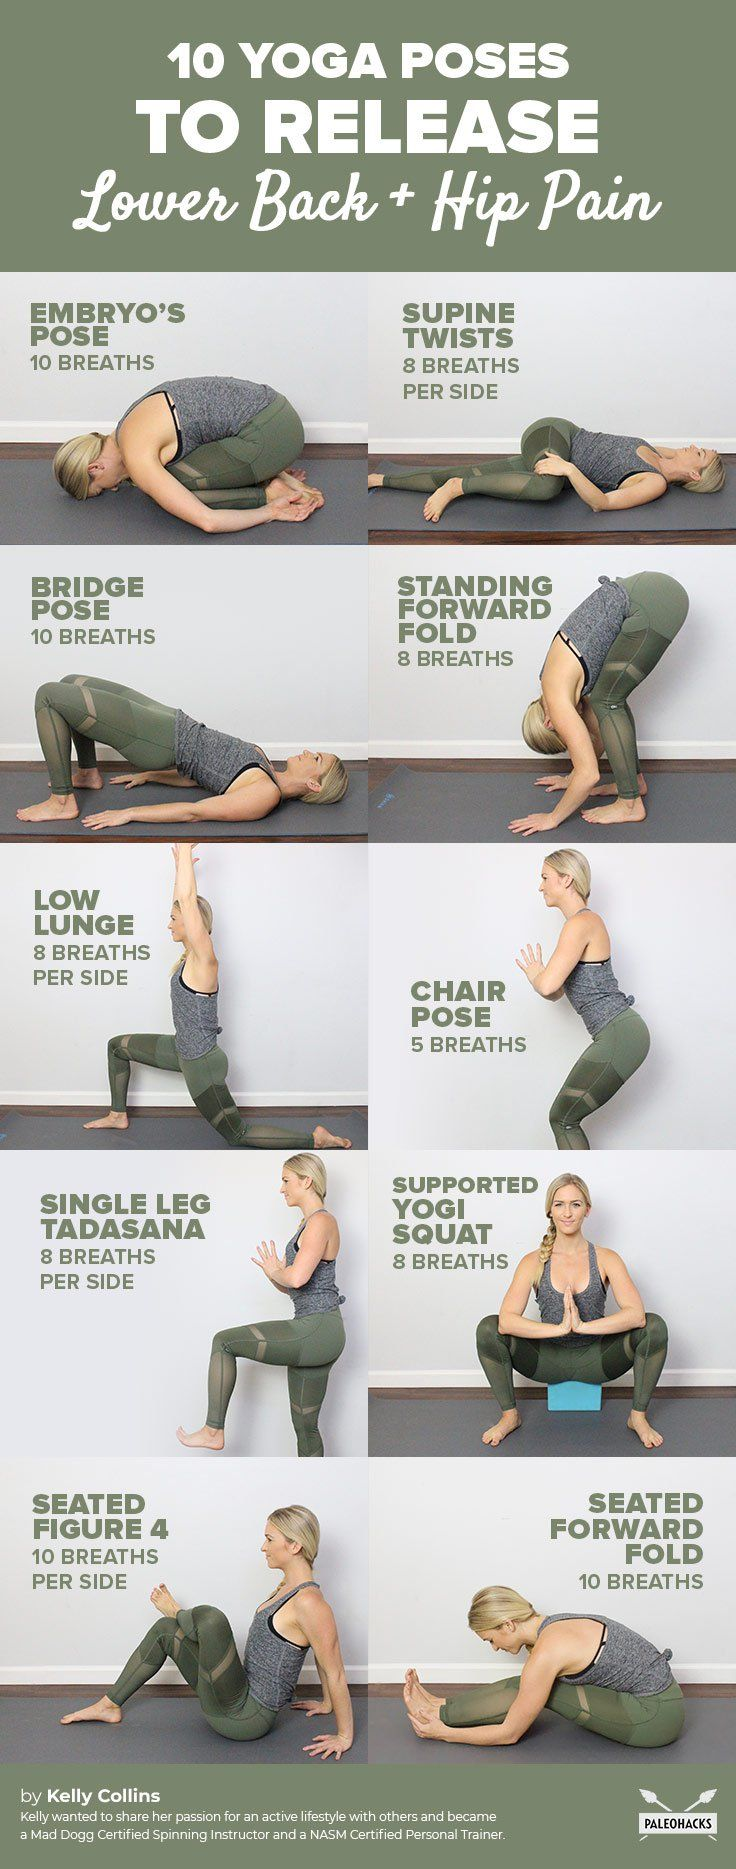 10 Yoga Poses to Melt Away Lower Back + Hip Pain